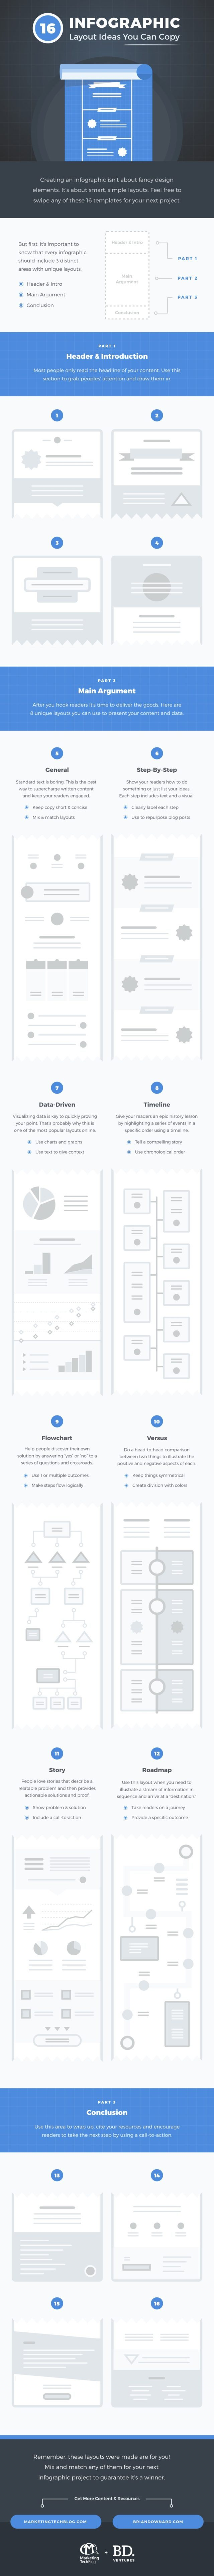 infographic layouts